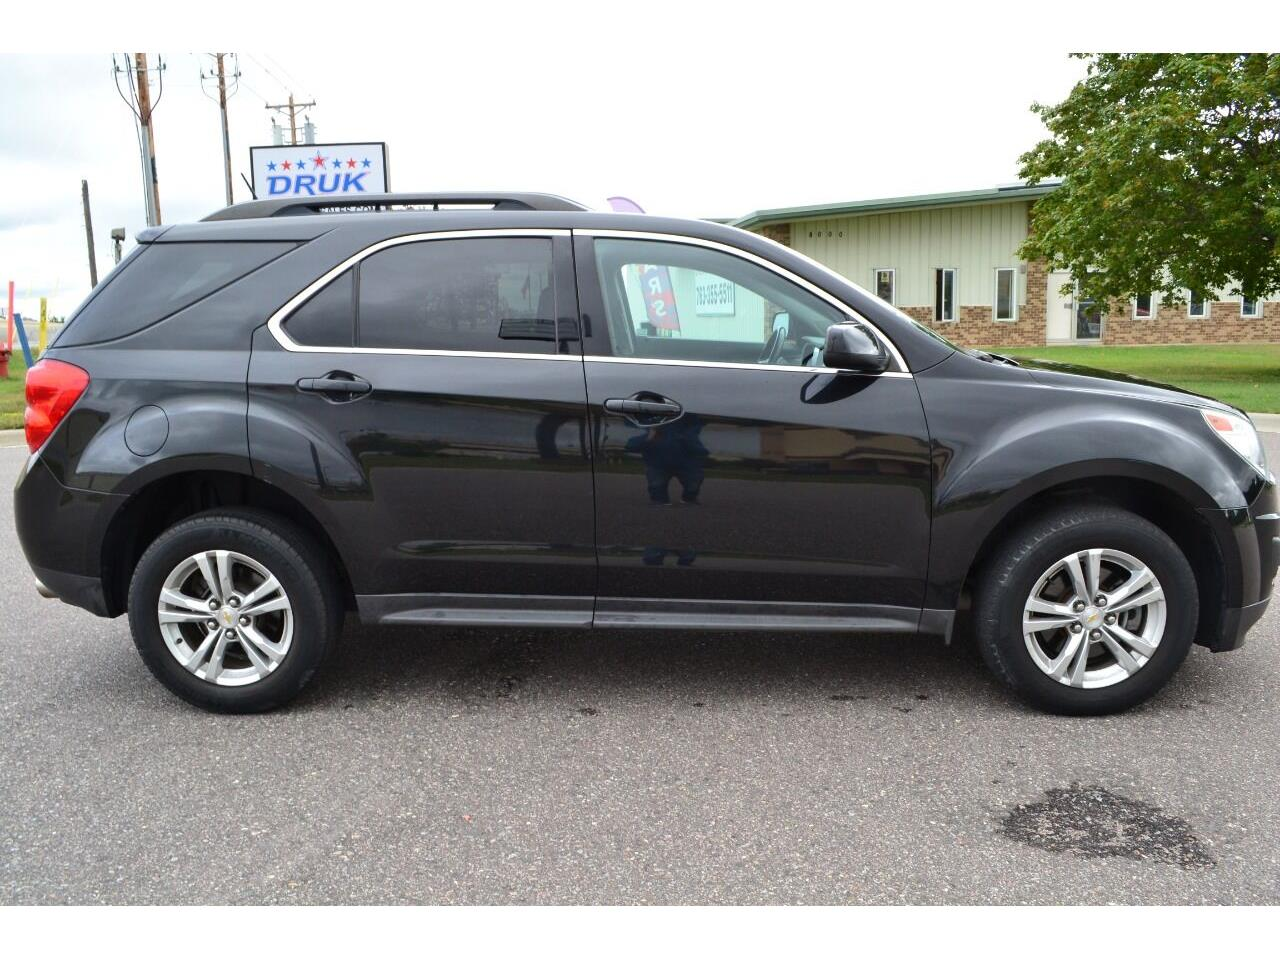 2015 Chevrolet Equinox (CC-1390339) for sale in Ramsey, Minnesota